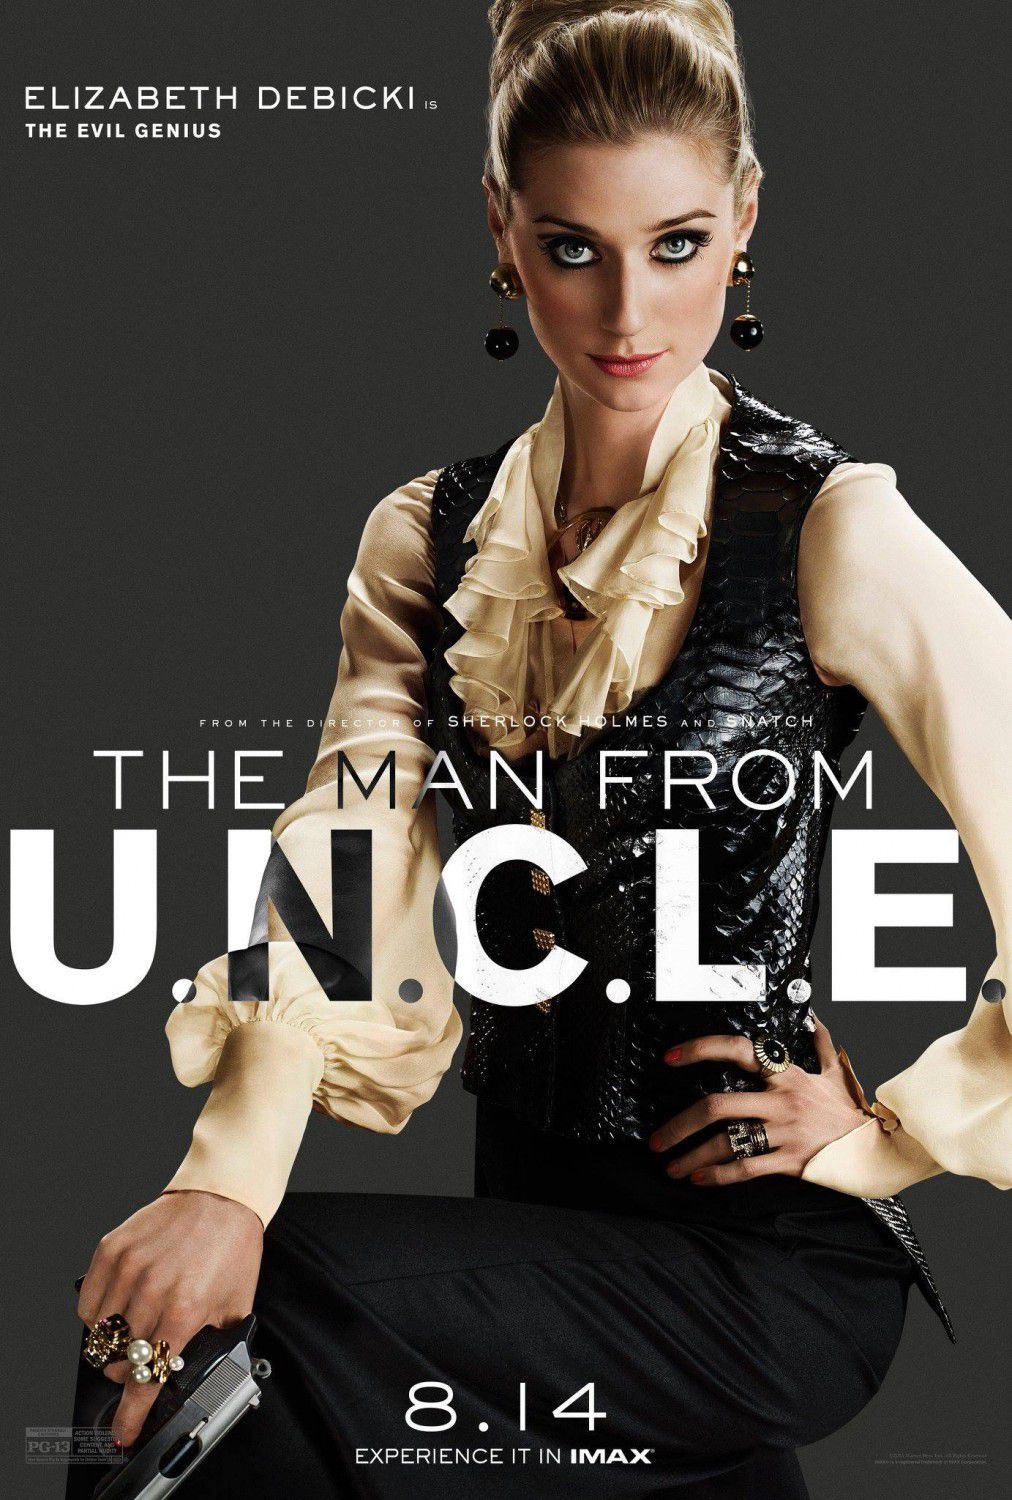 U.N.C.L.E. - Man from UNCLE -  Elizabeth Debicki